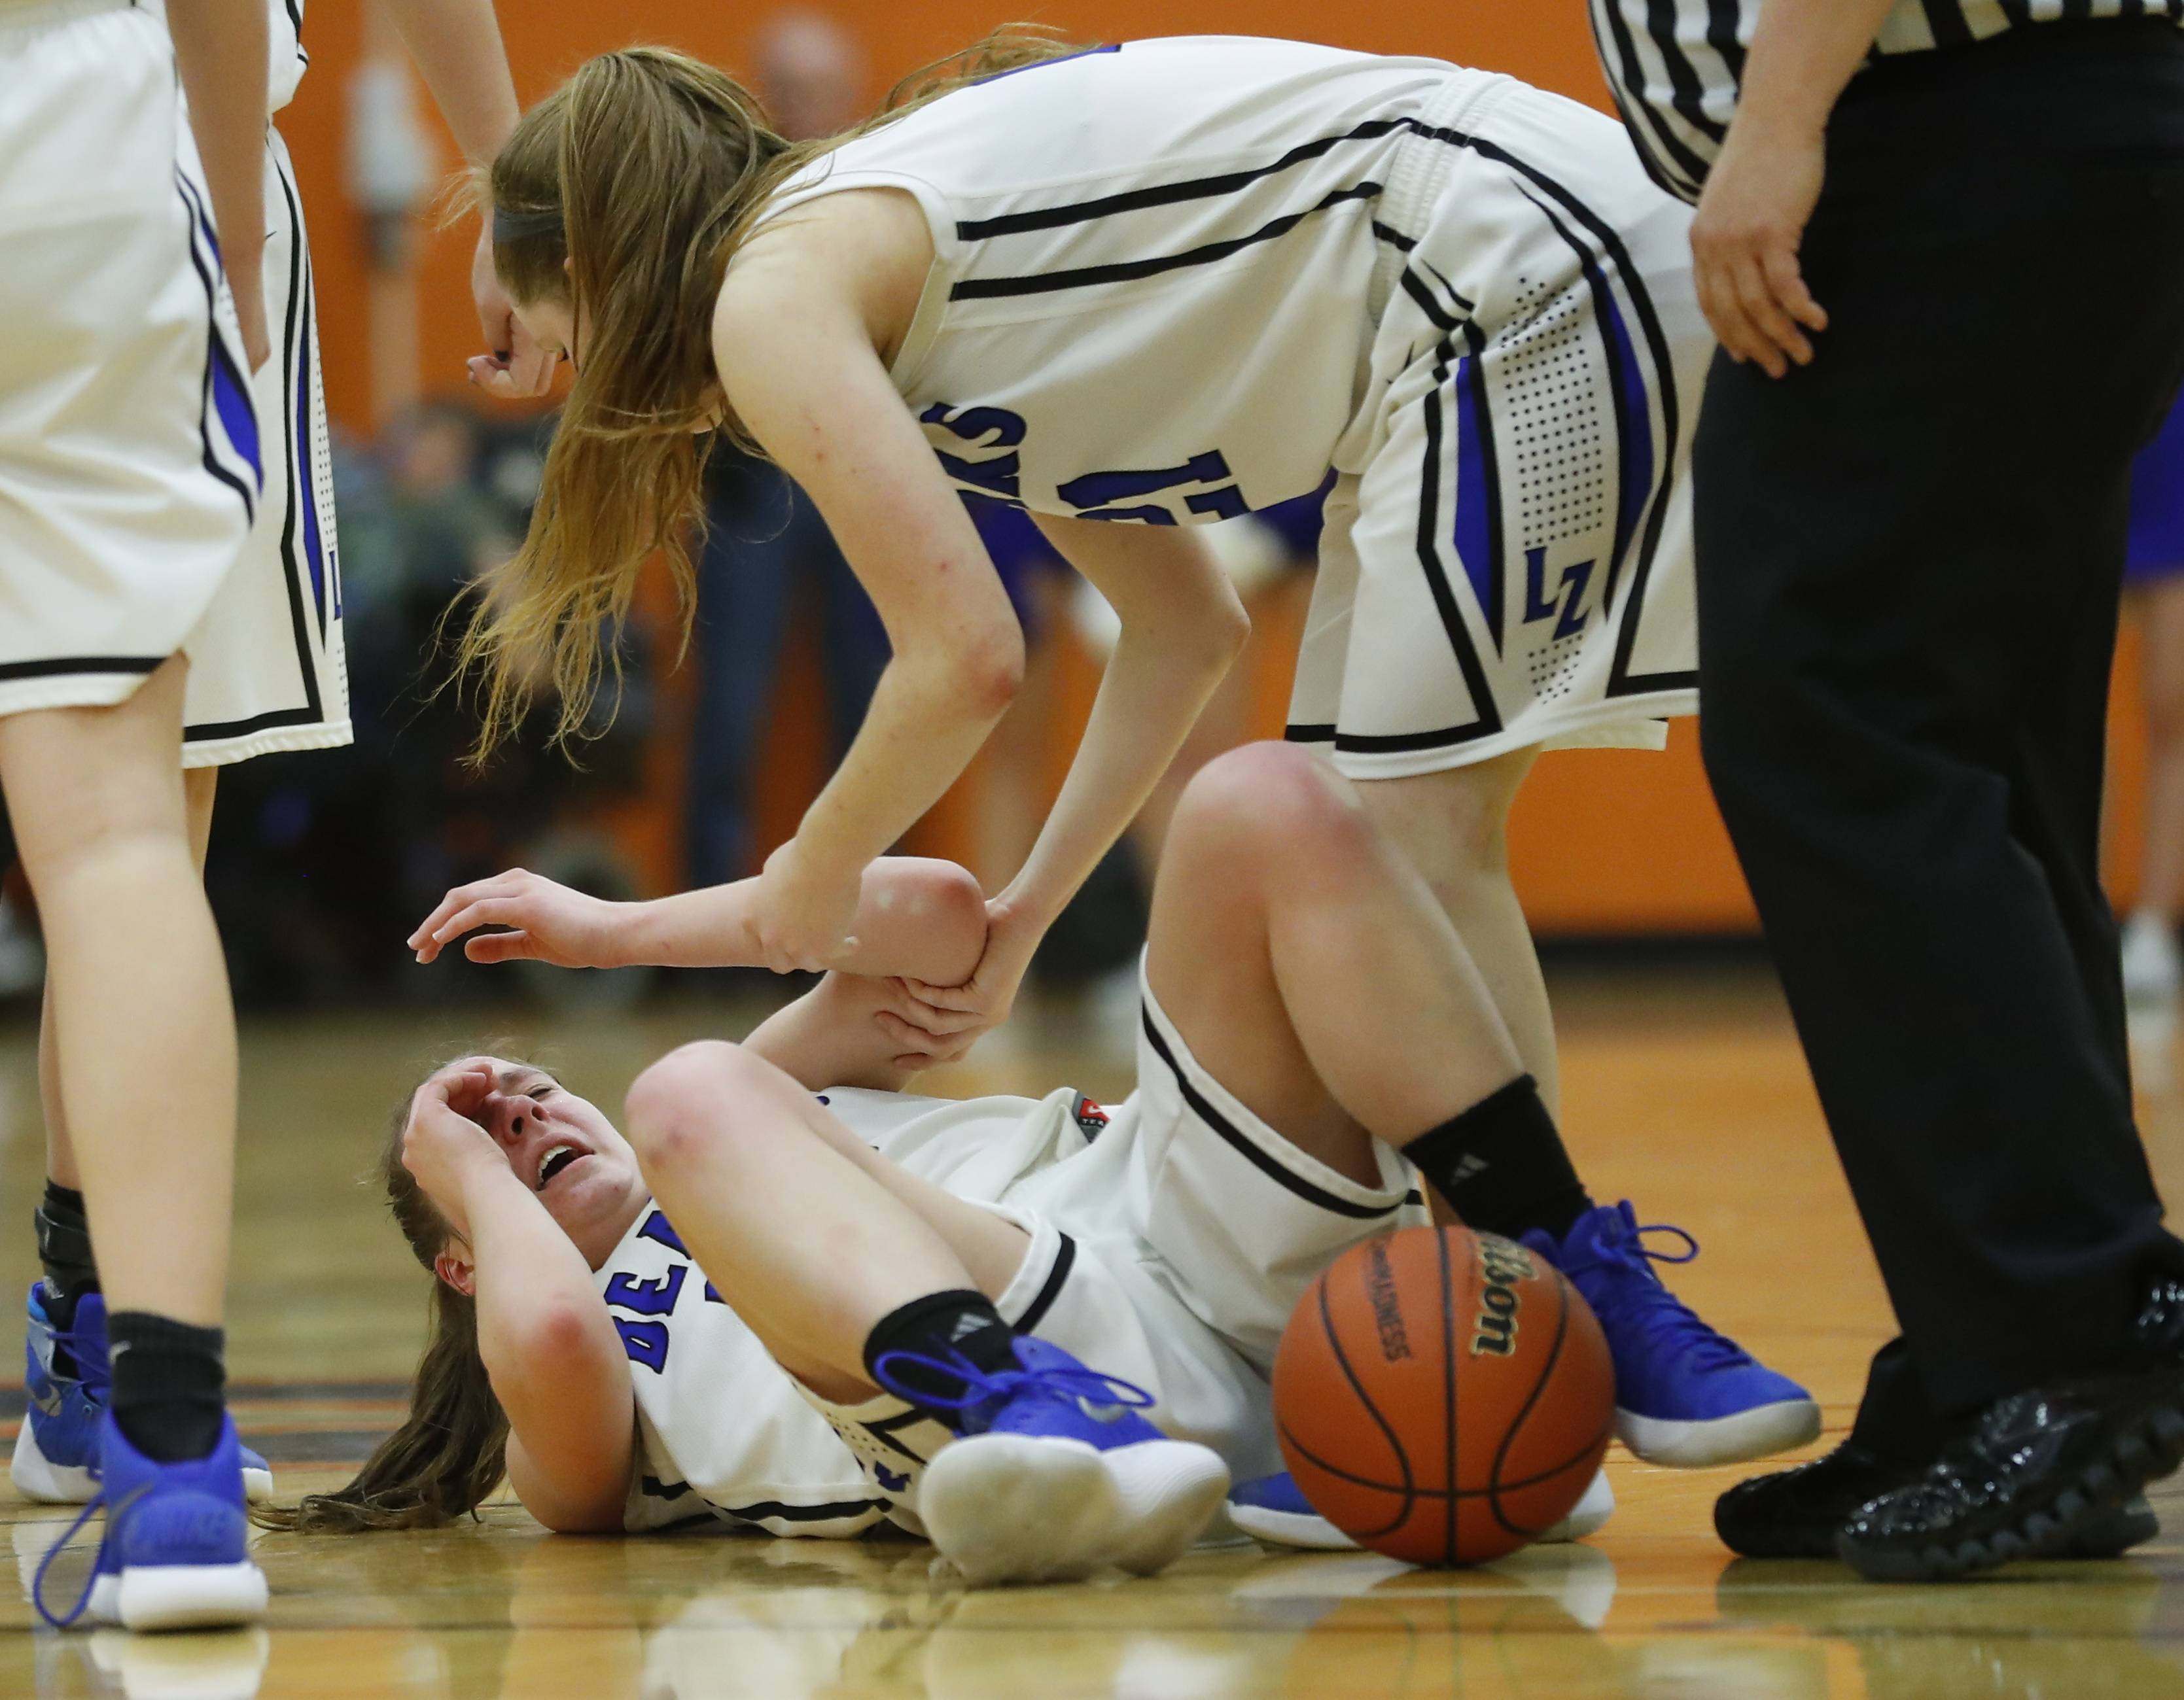 Lake Zurich's Grace Kinsey lays on the ground after some rough play during the Class 4A supersectional at Hersey High School in Arlington Heights on Monday.